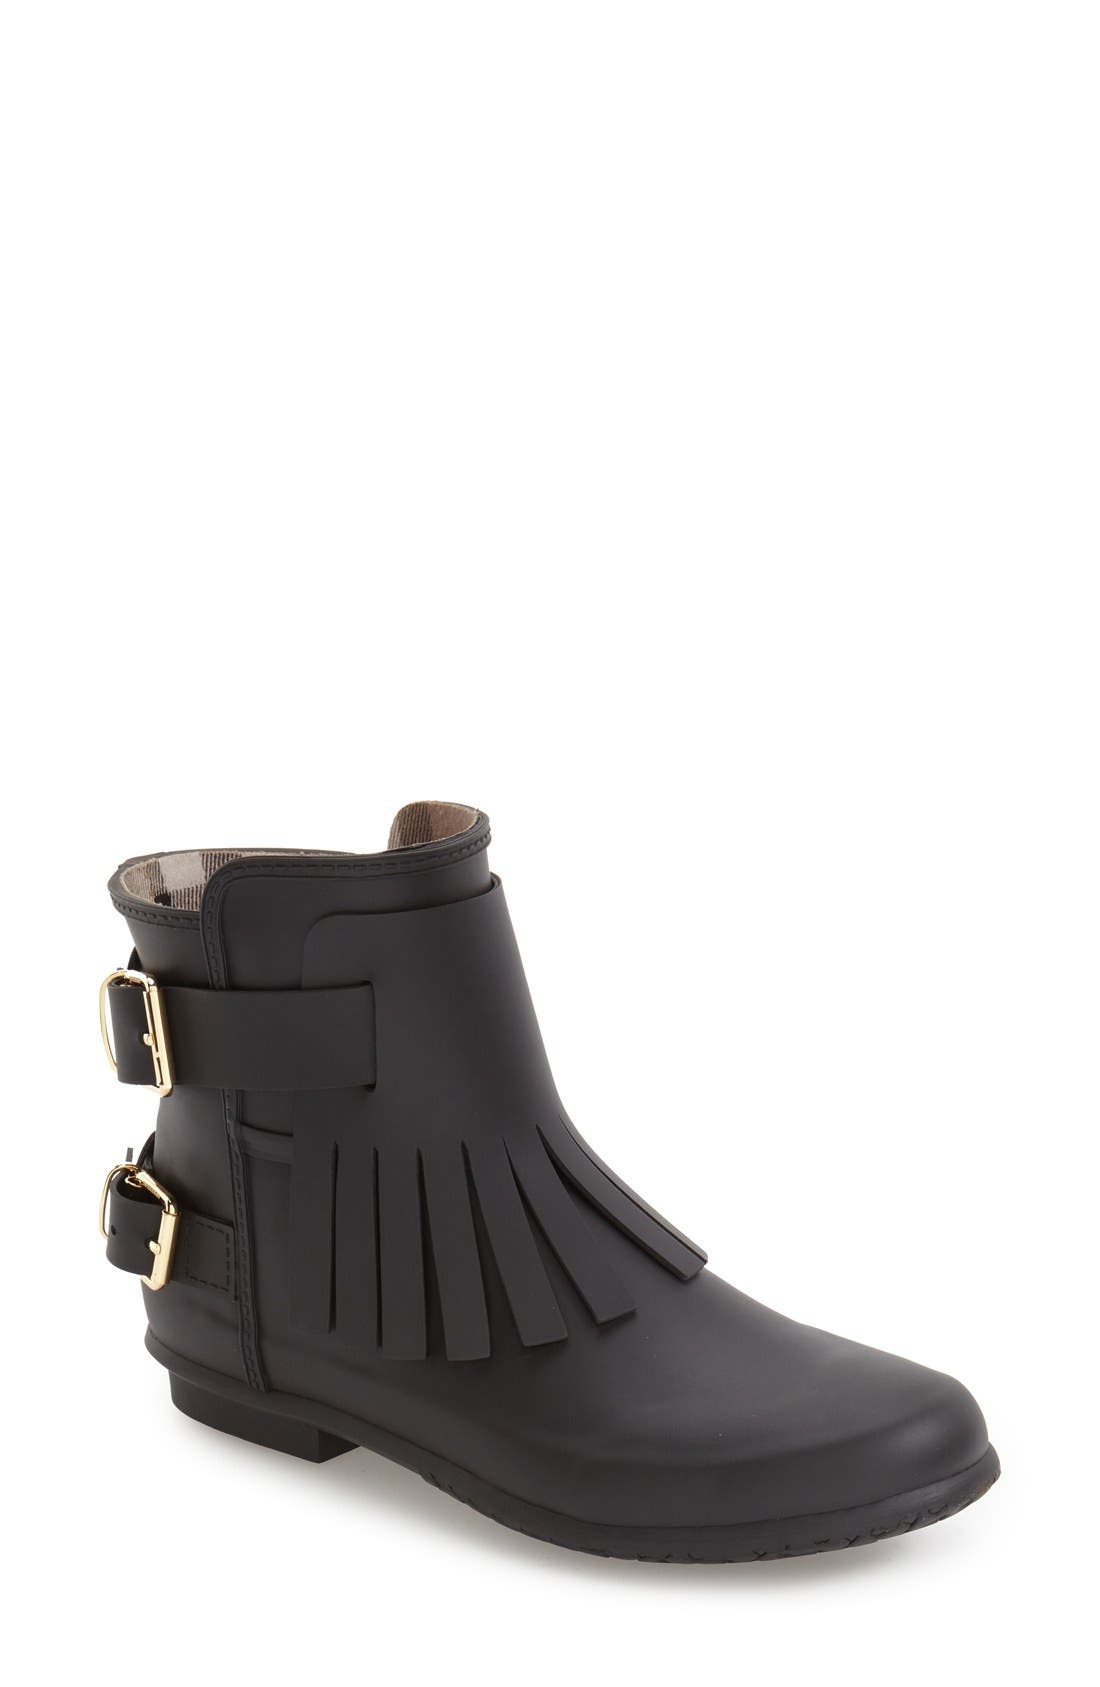 Burberry 'Fritton' Kiltie Rain Boot (Women)